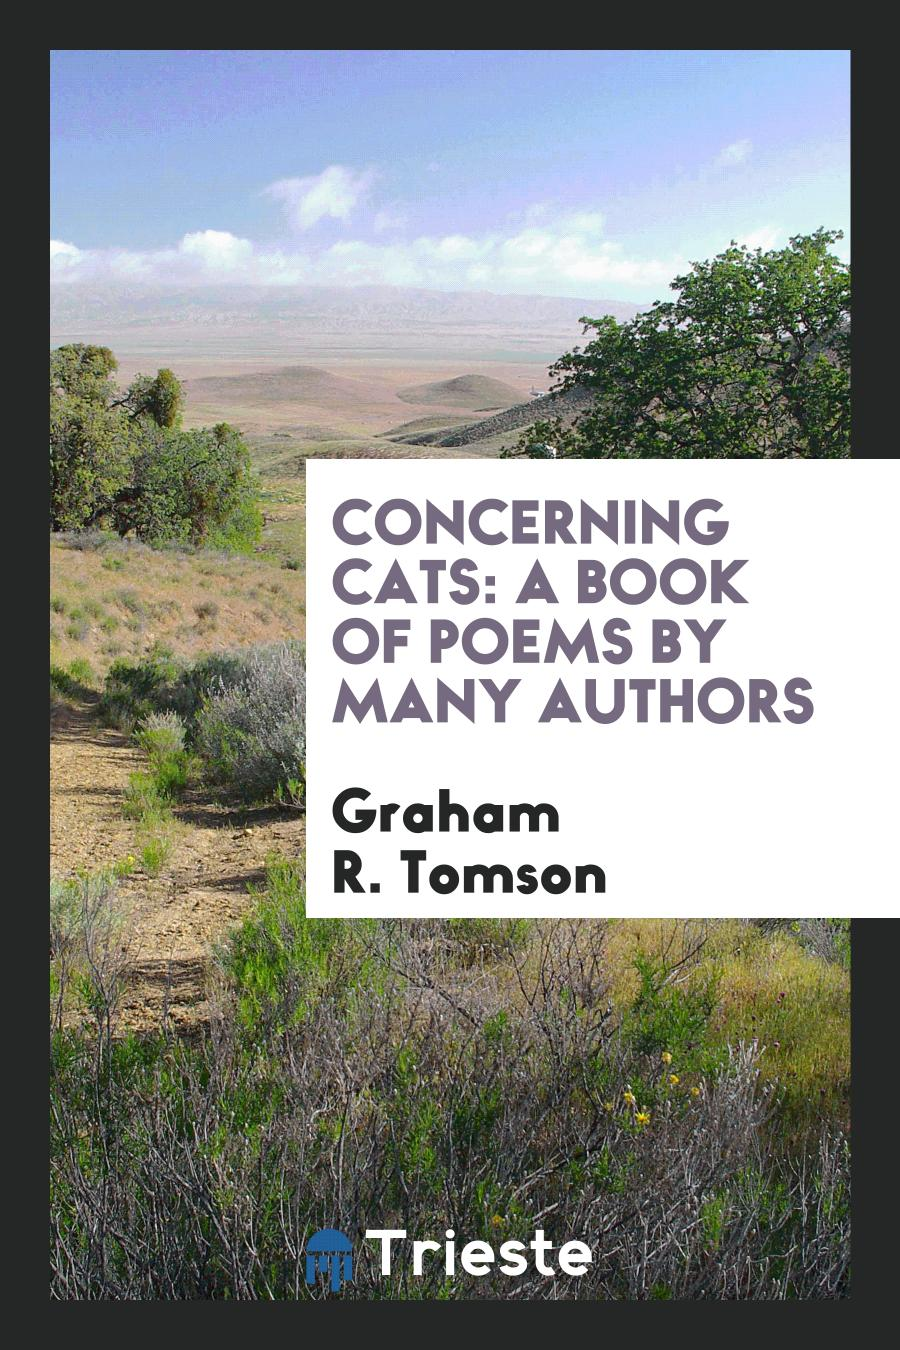 Concerning Cats: A Book of Poems by Many Authors